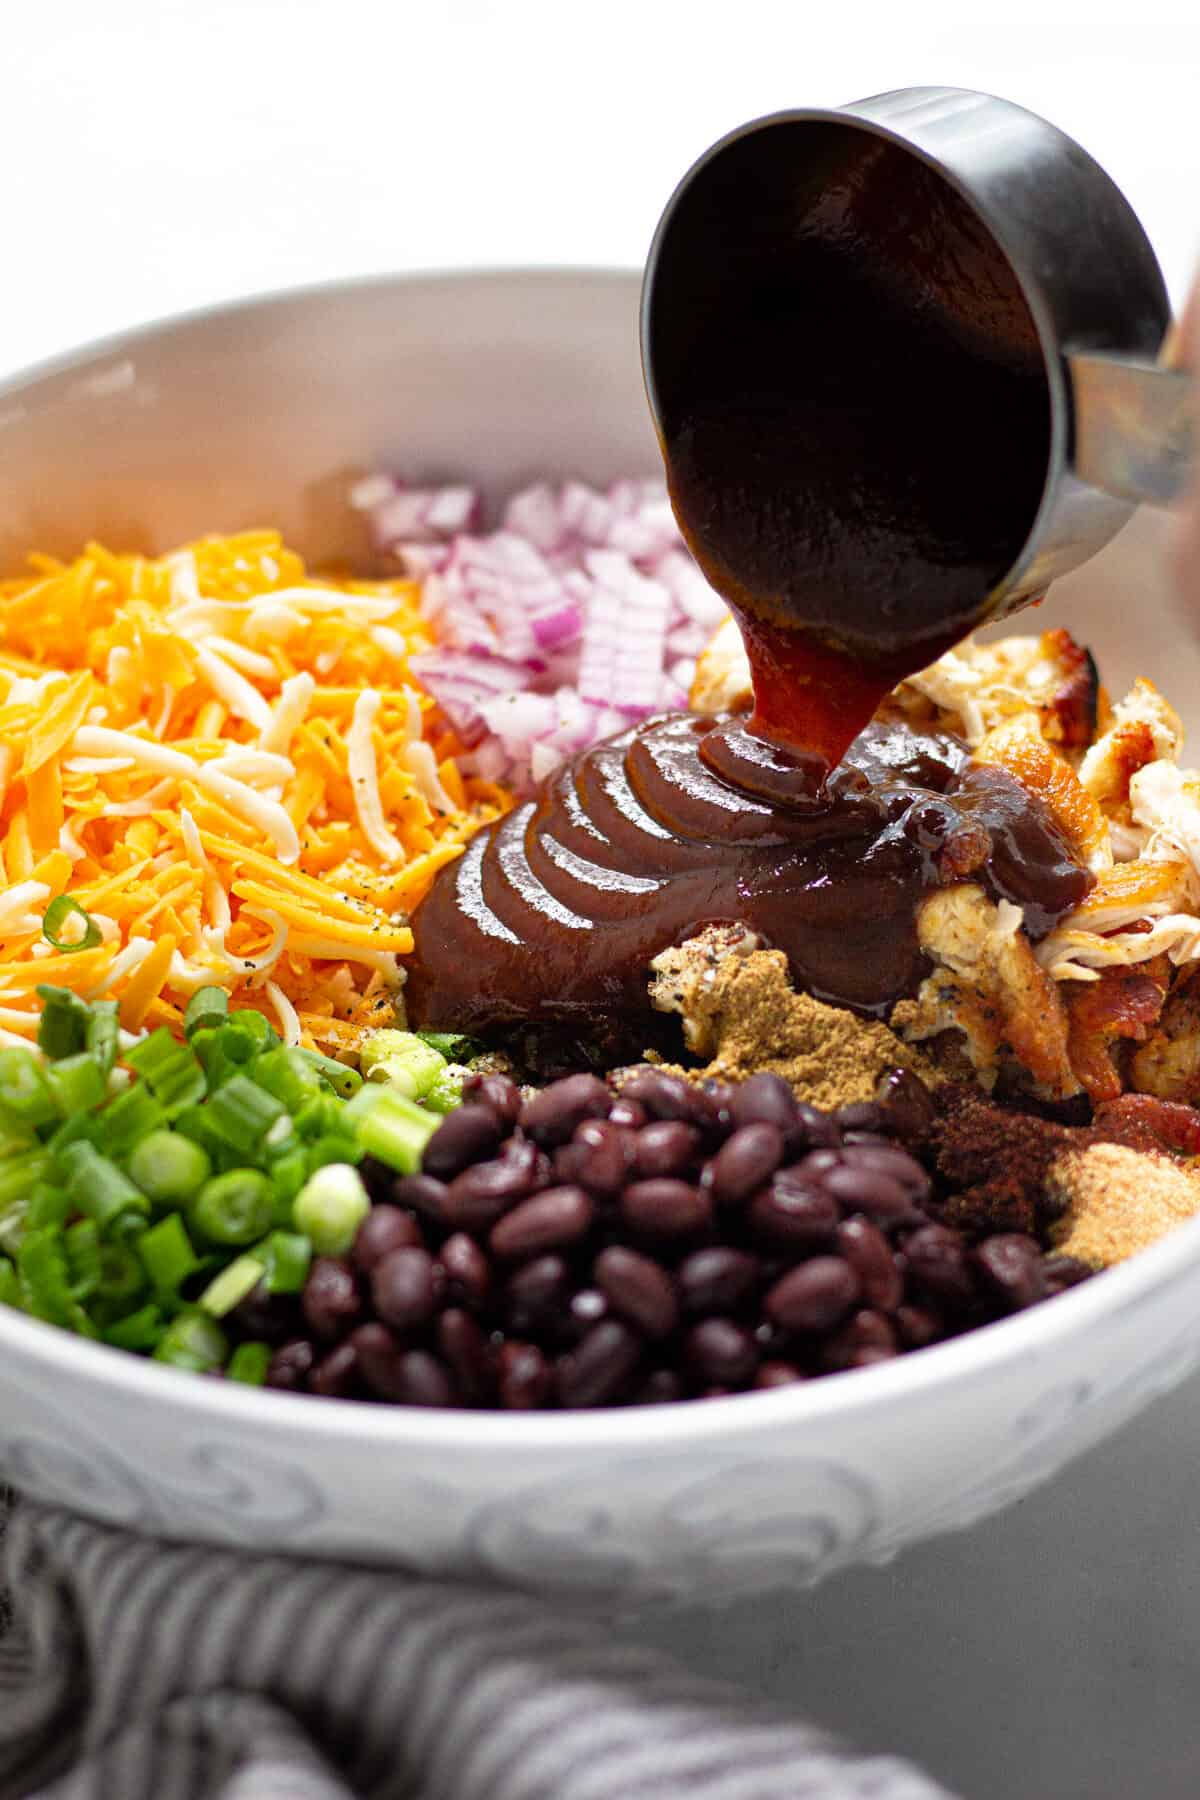 BBQ sauce being poured into a bowl filled with ingredients to make barbecue chicken quesadillas